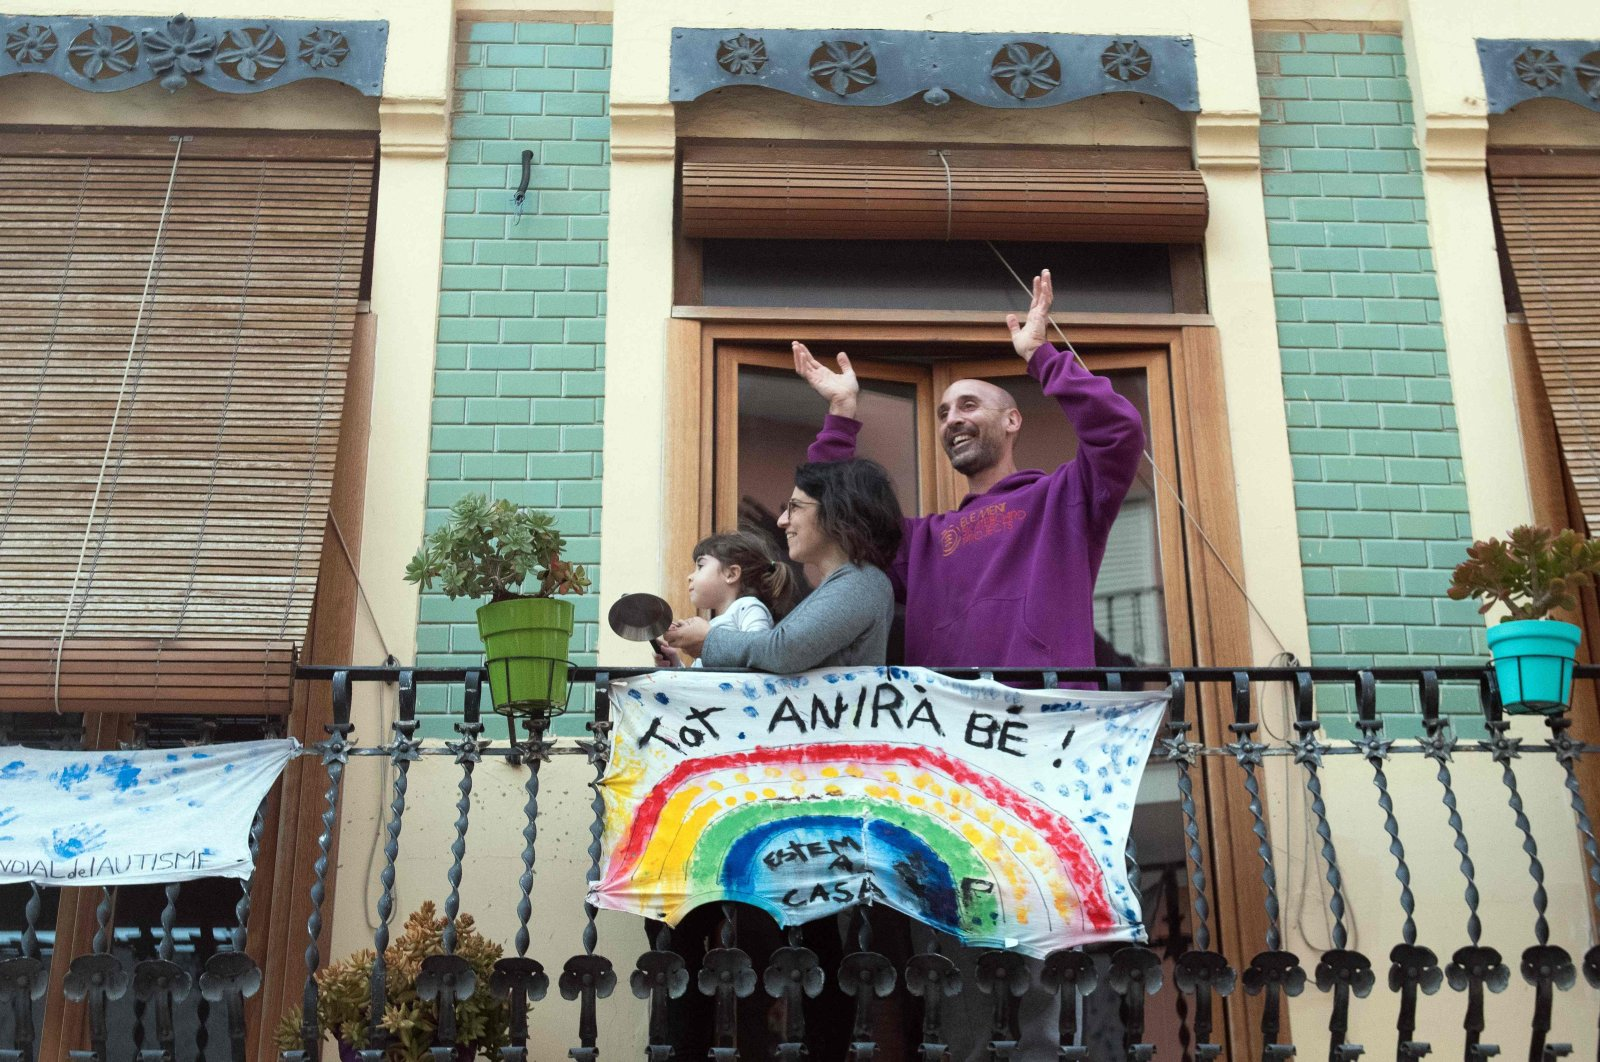 """A family applauds from their balcony, adorned with a banner reading """"Everything will be ok,"""" in El Cabanal, Valencia, April 9, 2020. (AFP Photo)"""